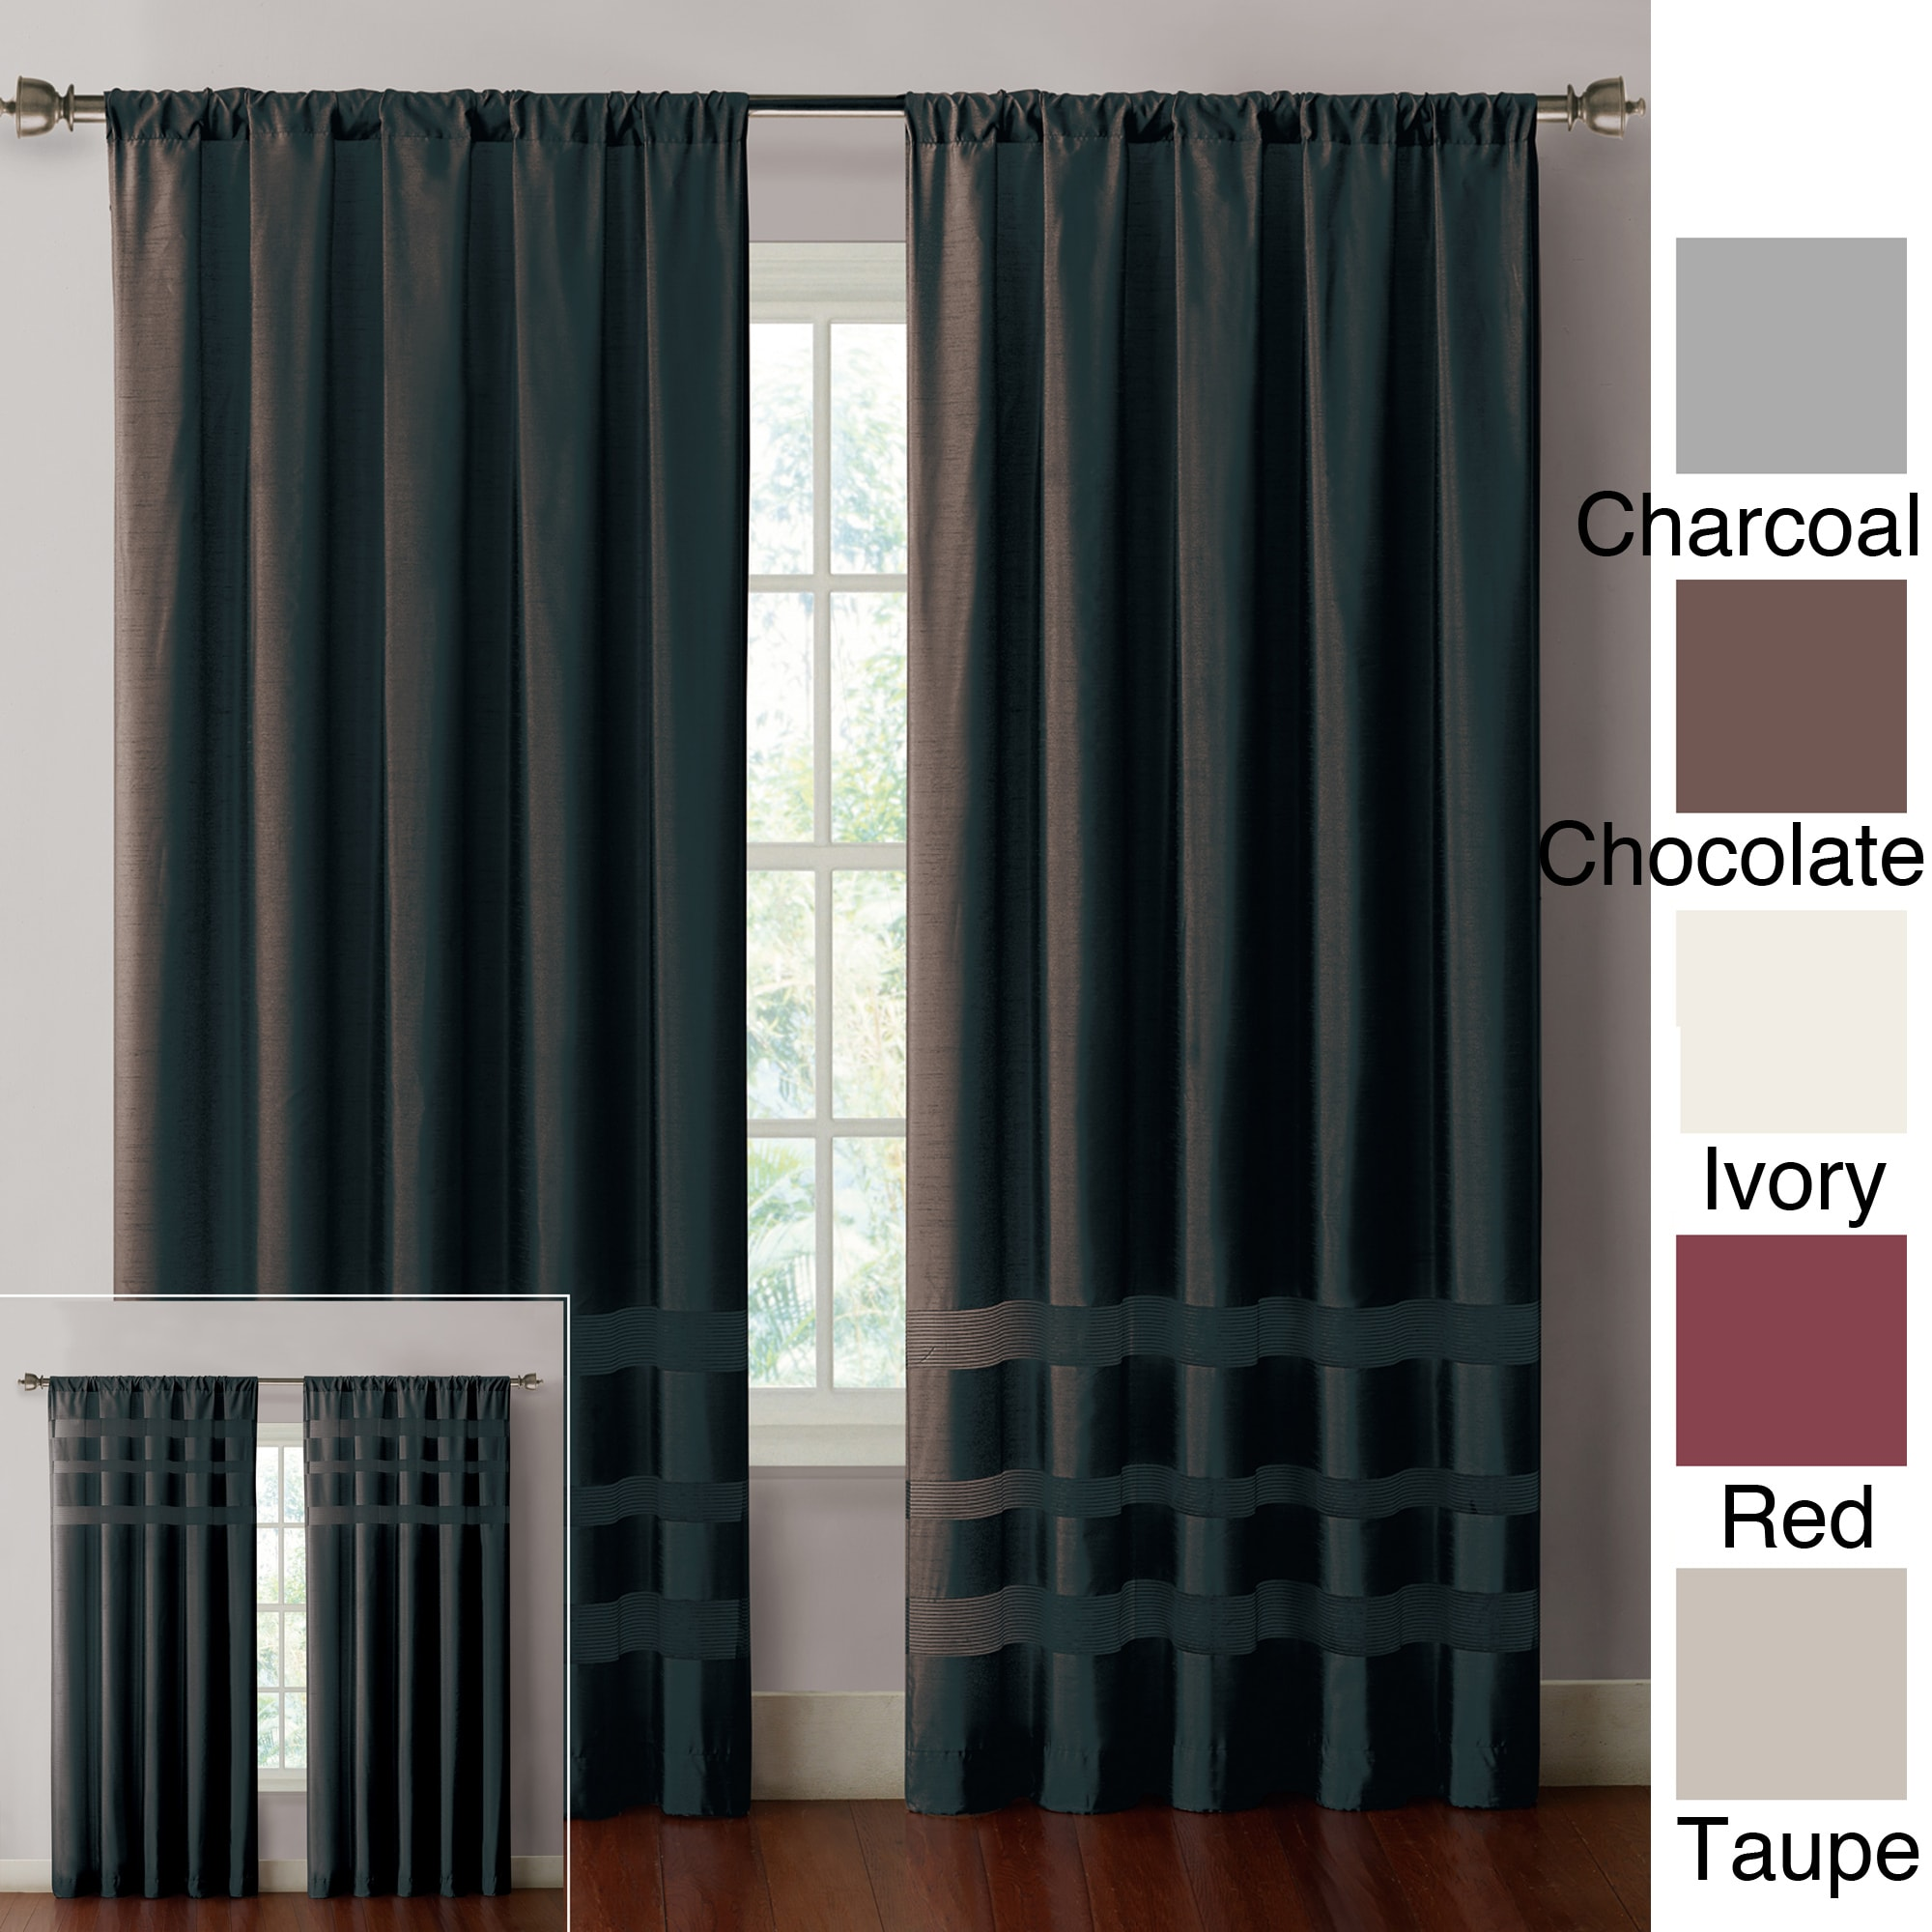 VCNY Maddox Faux Silk with Chenille Bands 84-inch Curtain Panel